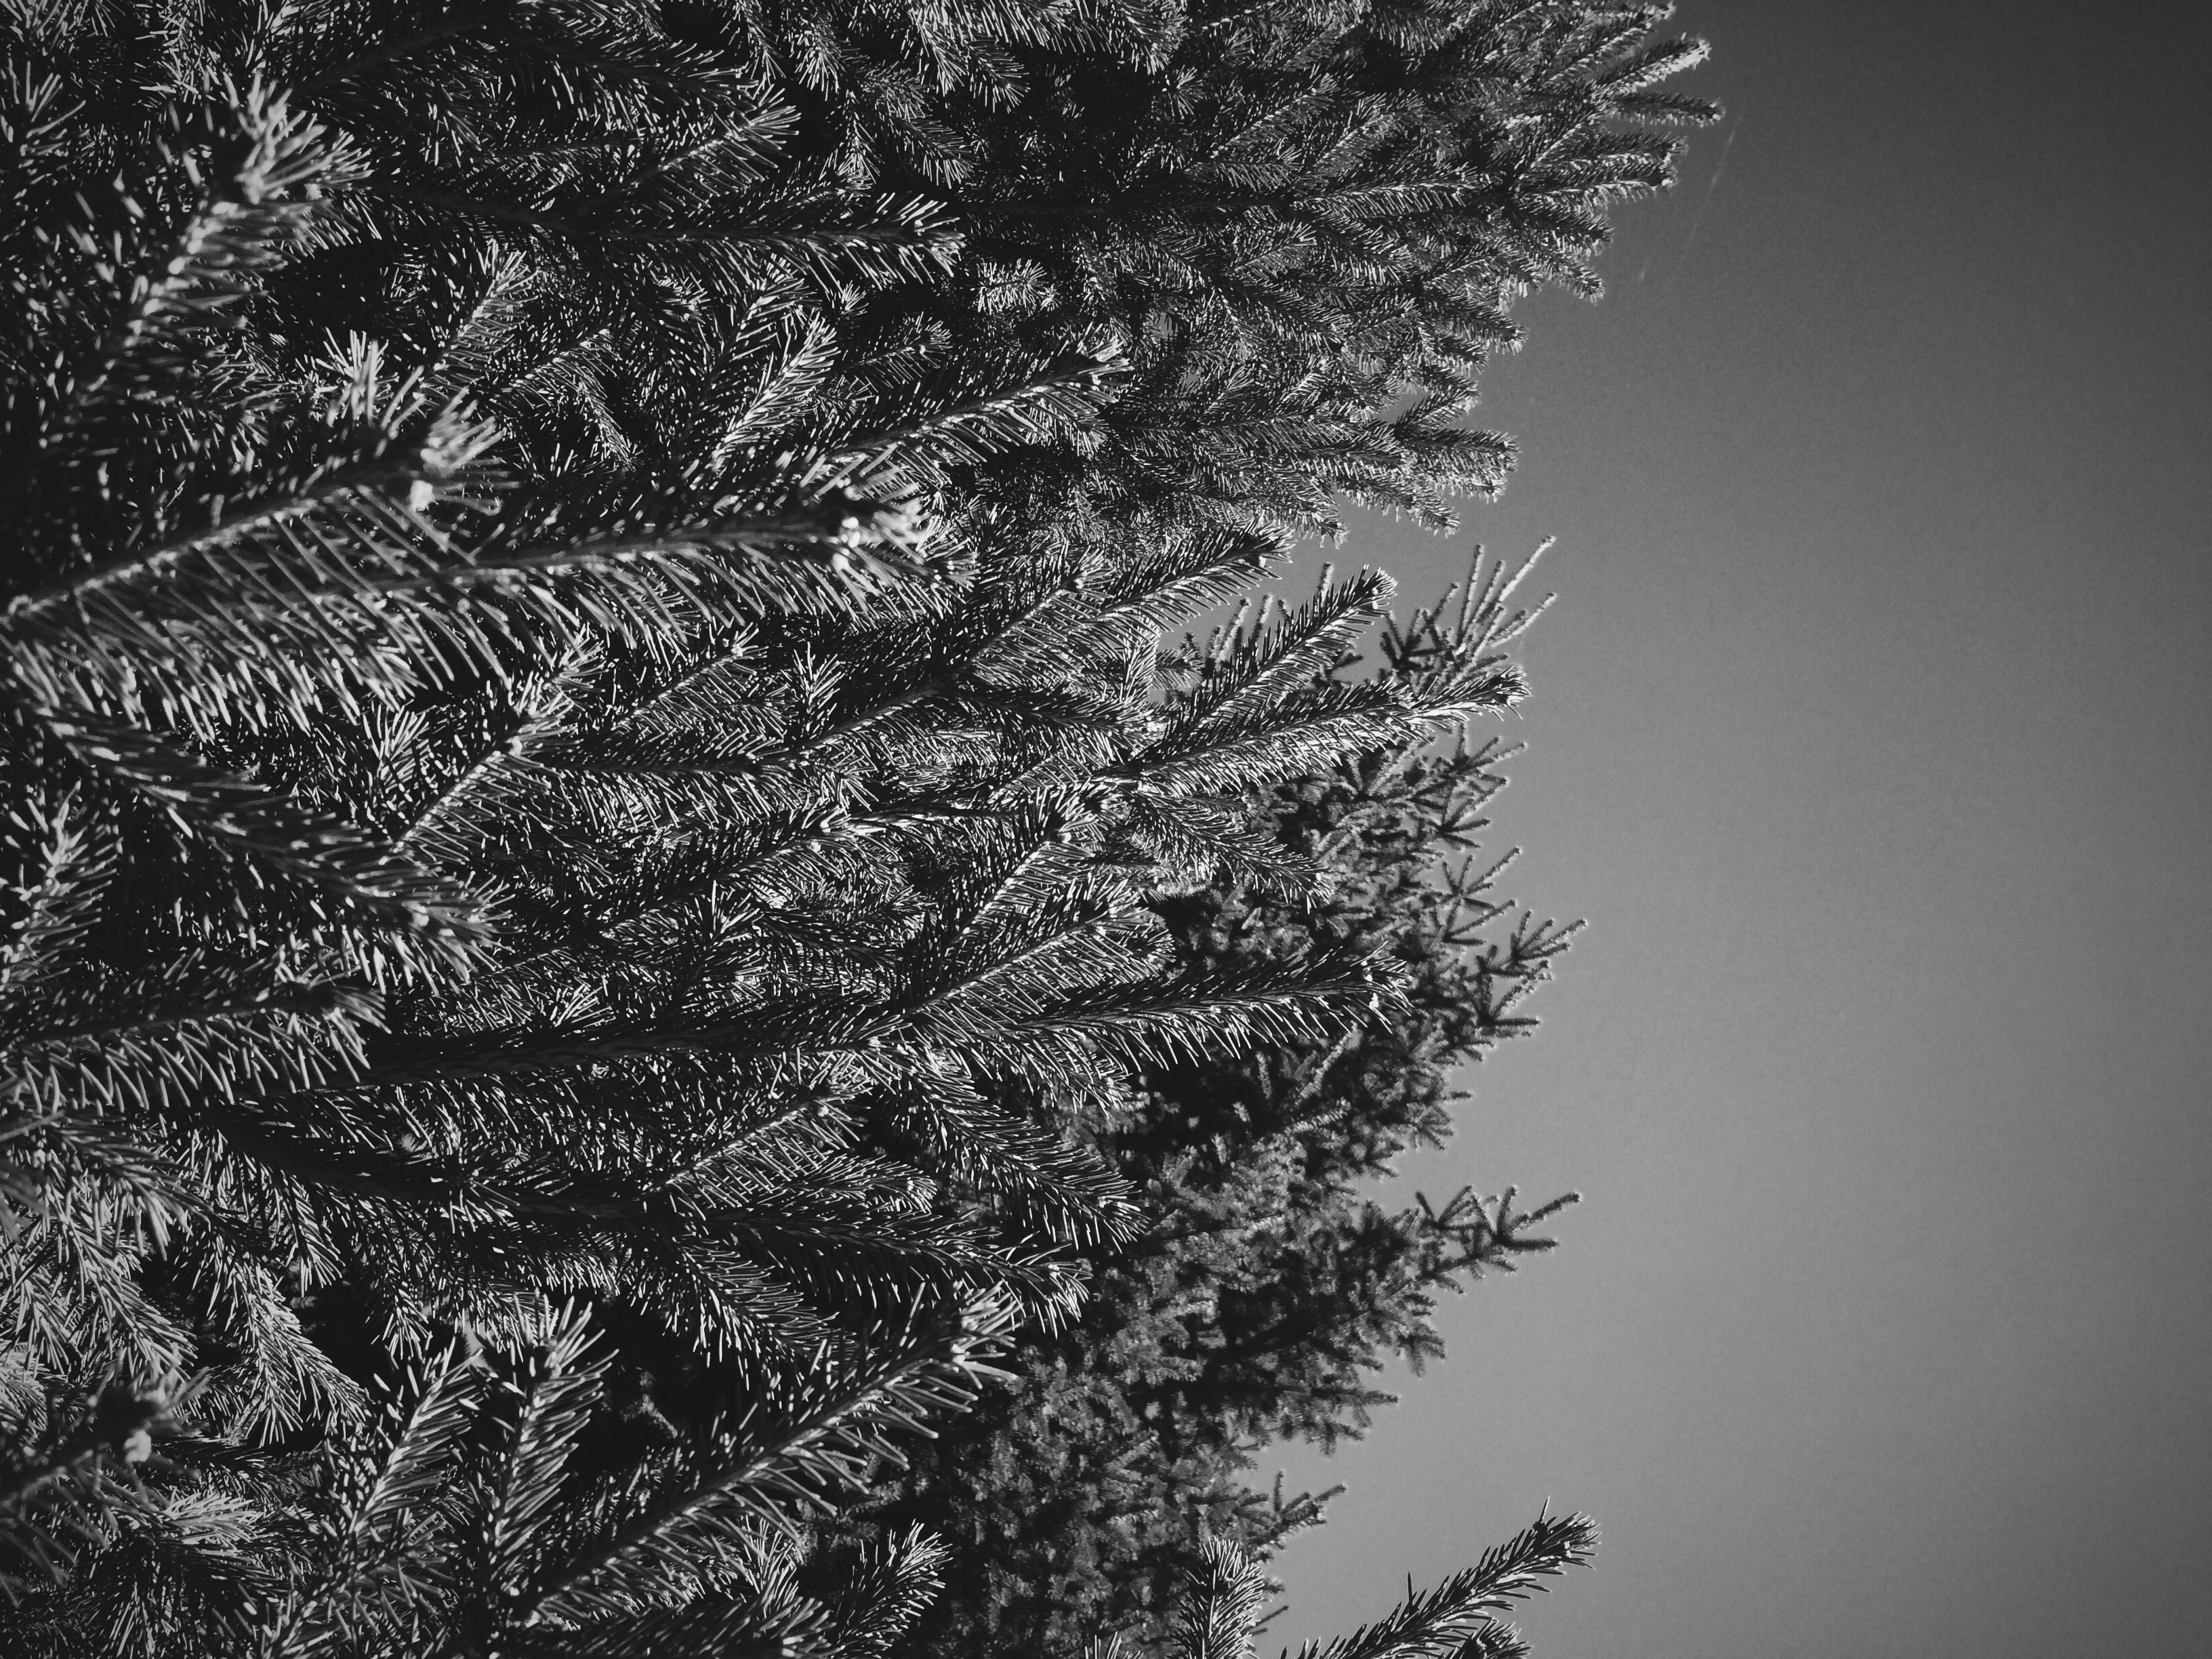 free stock photo of black and white brunch christmas tree